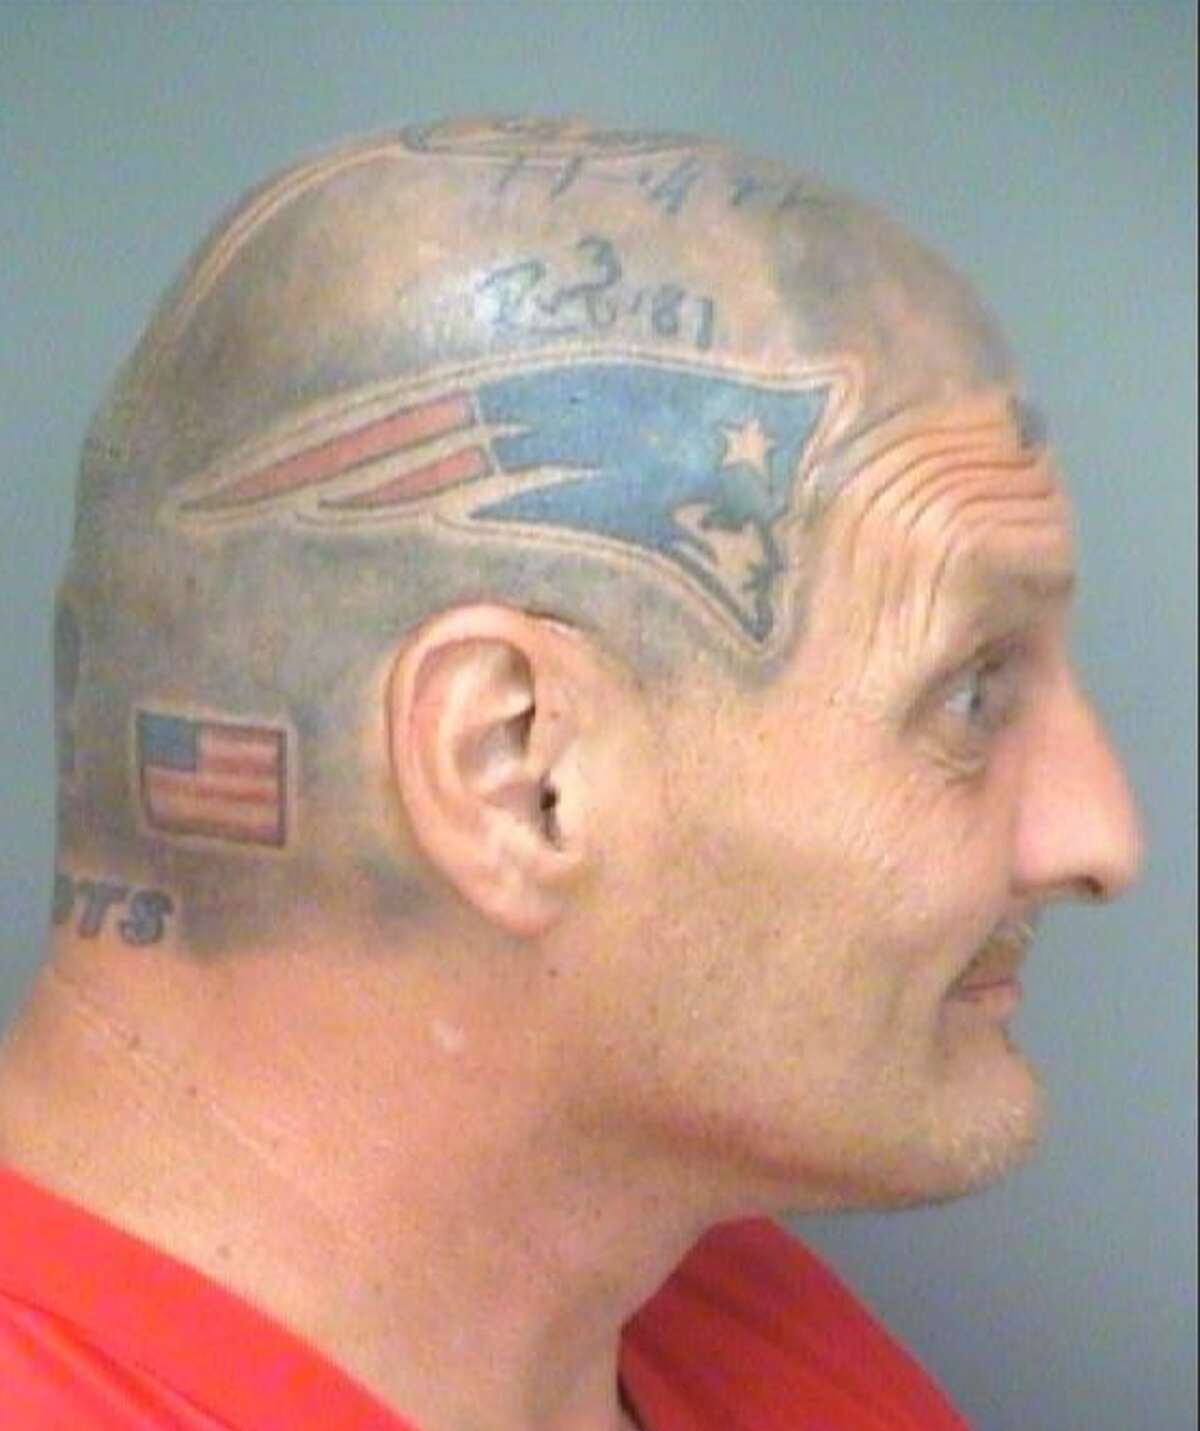 Victor Thompson, of Florida, wears his enthusiasm for the New England Patriots on his head, which is tattooed to look like a football helmet, as seen in booking photos from a September 2014 arrest in St. Petersburg. As the Patriots prepare for Super Bowl LI on Sunday, Feb. 5, 2017, in Houston, Thompson is still wanted on four drug-related warrants from Pinellas County, Fla.